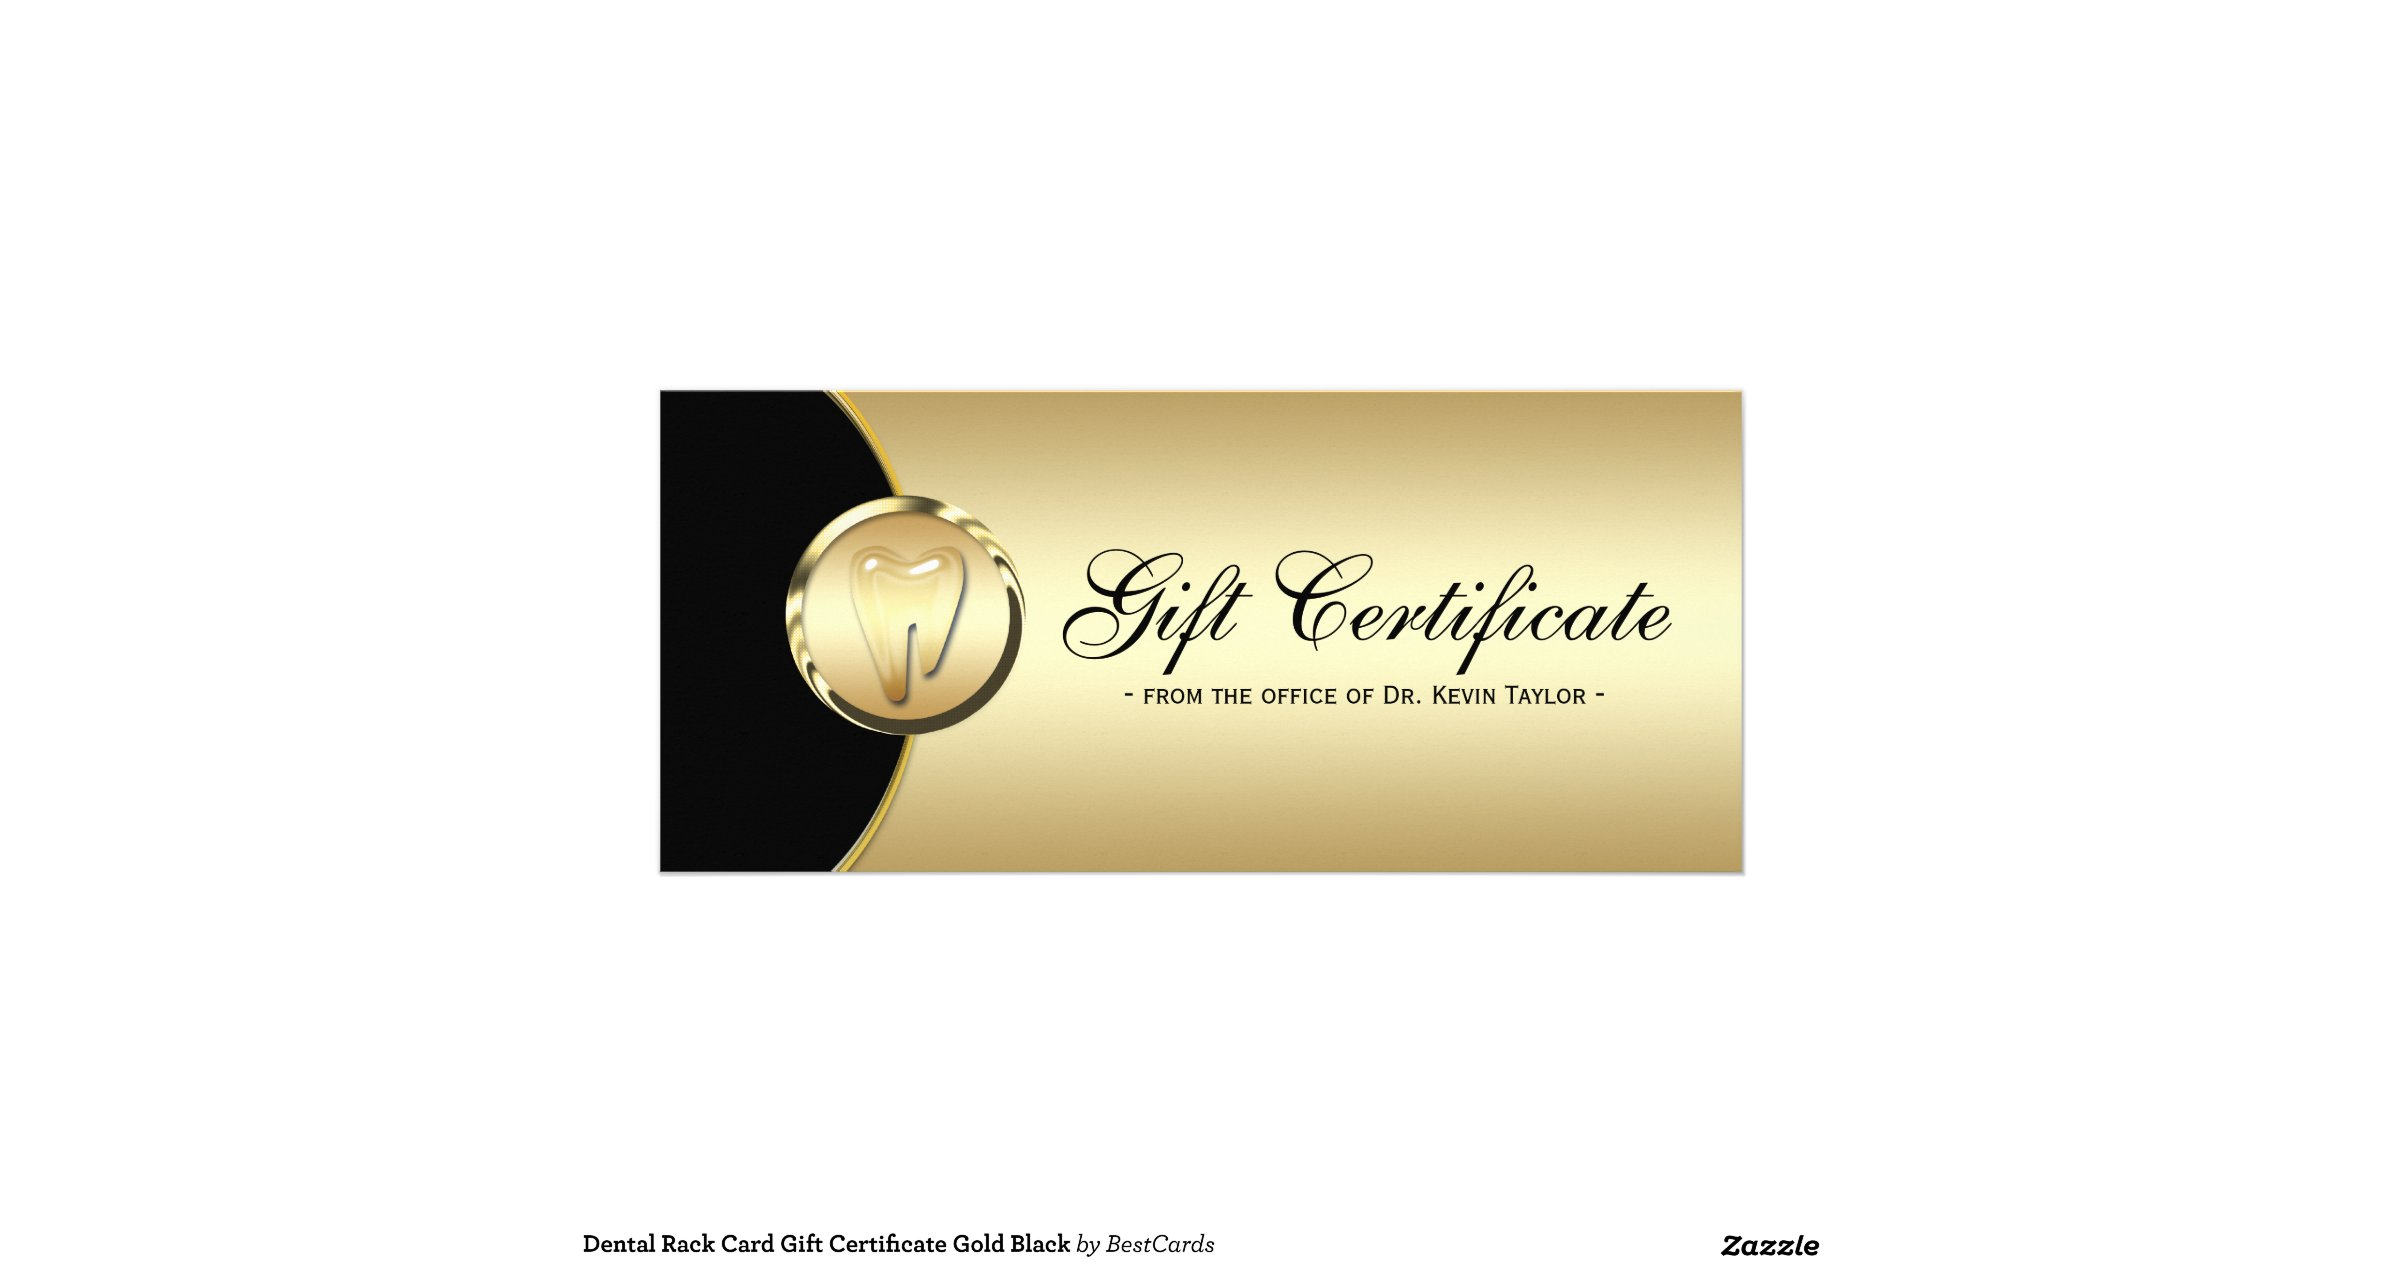 Dental rack card gift certificate gold black for Dental gift certificate template